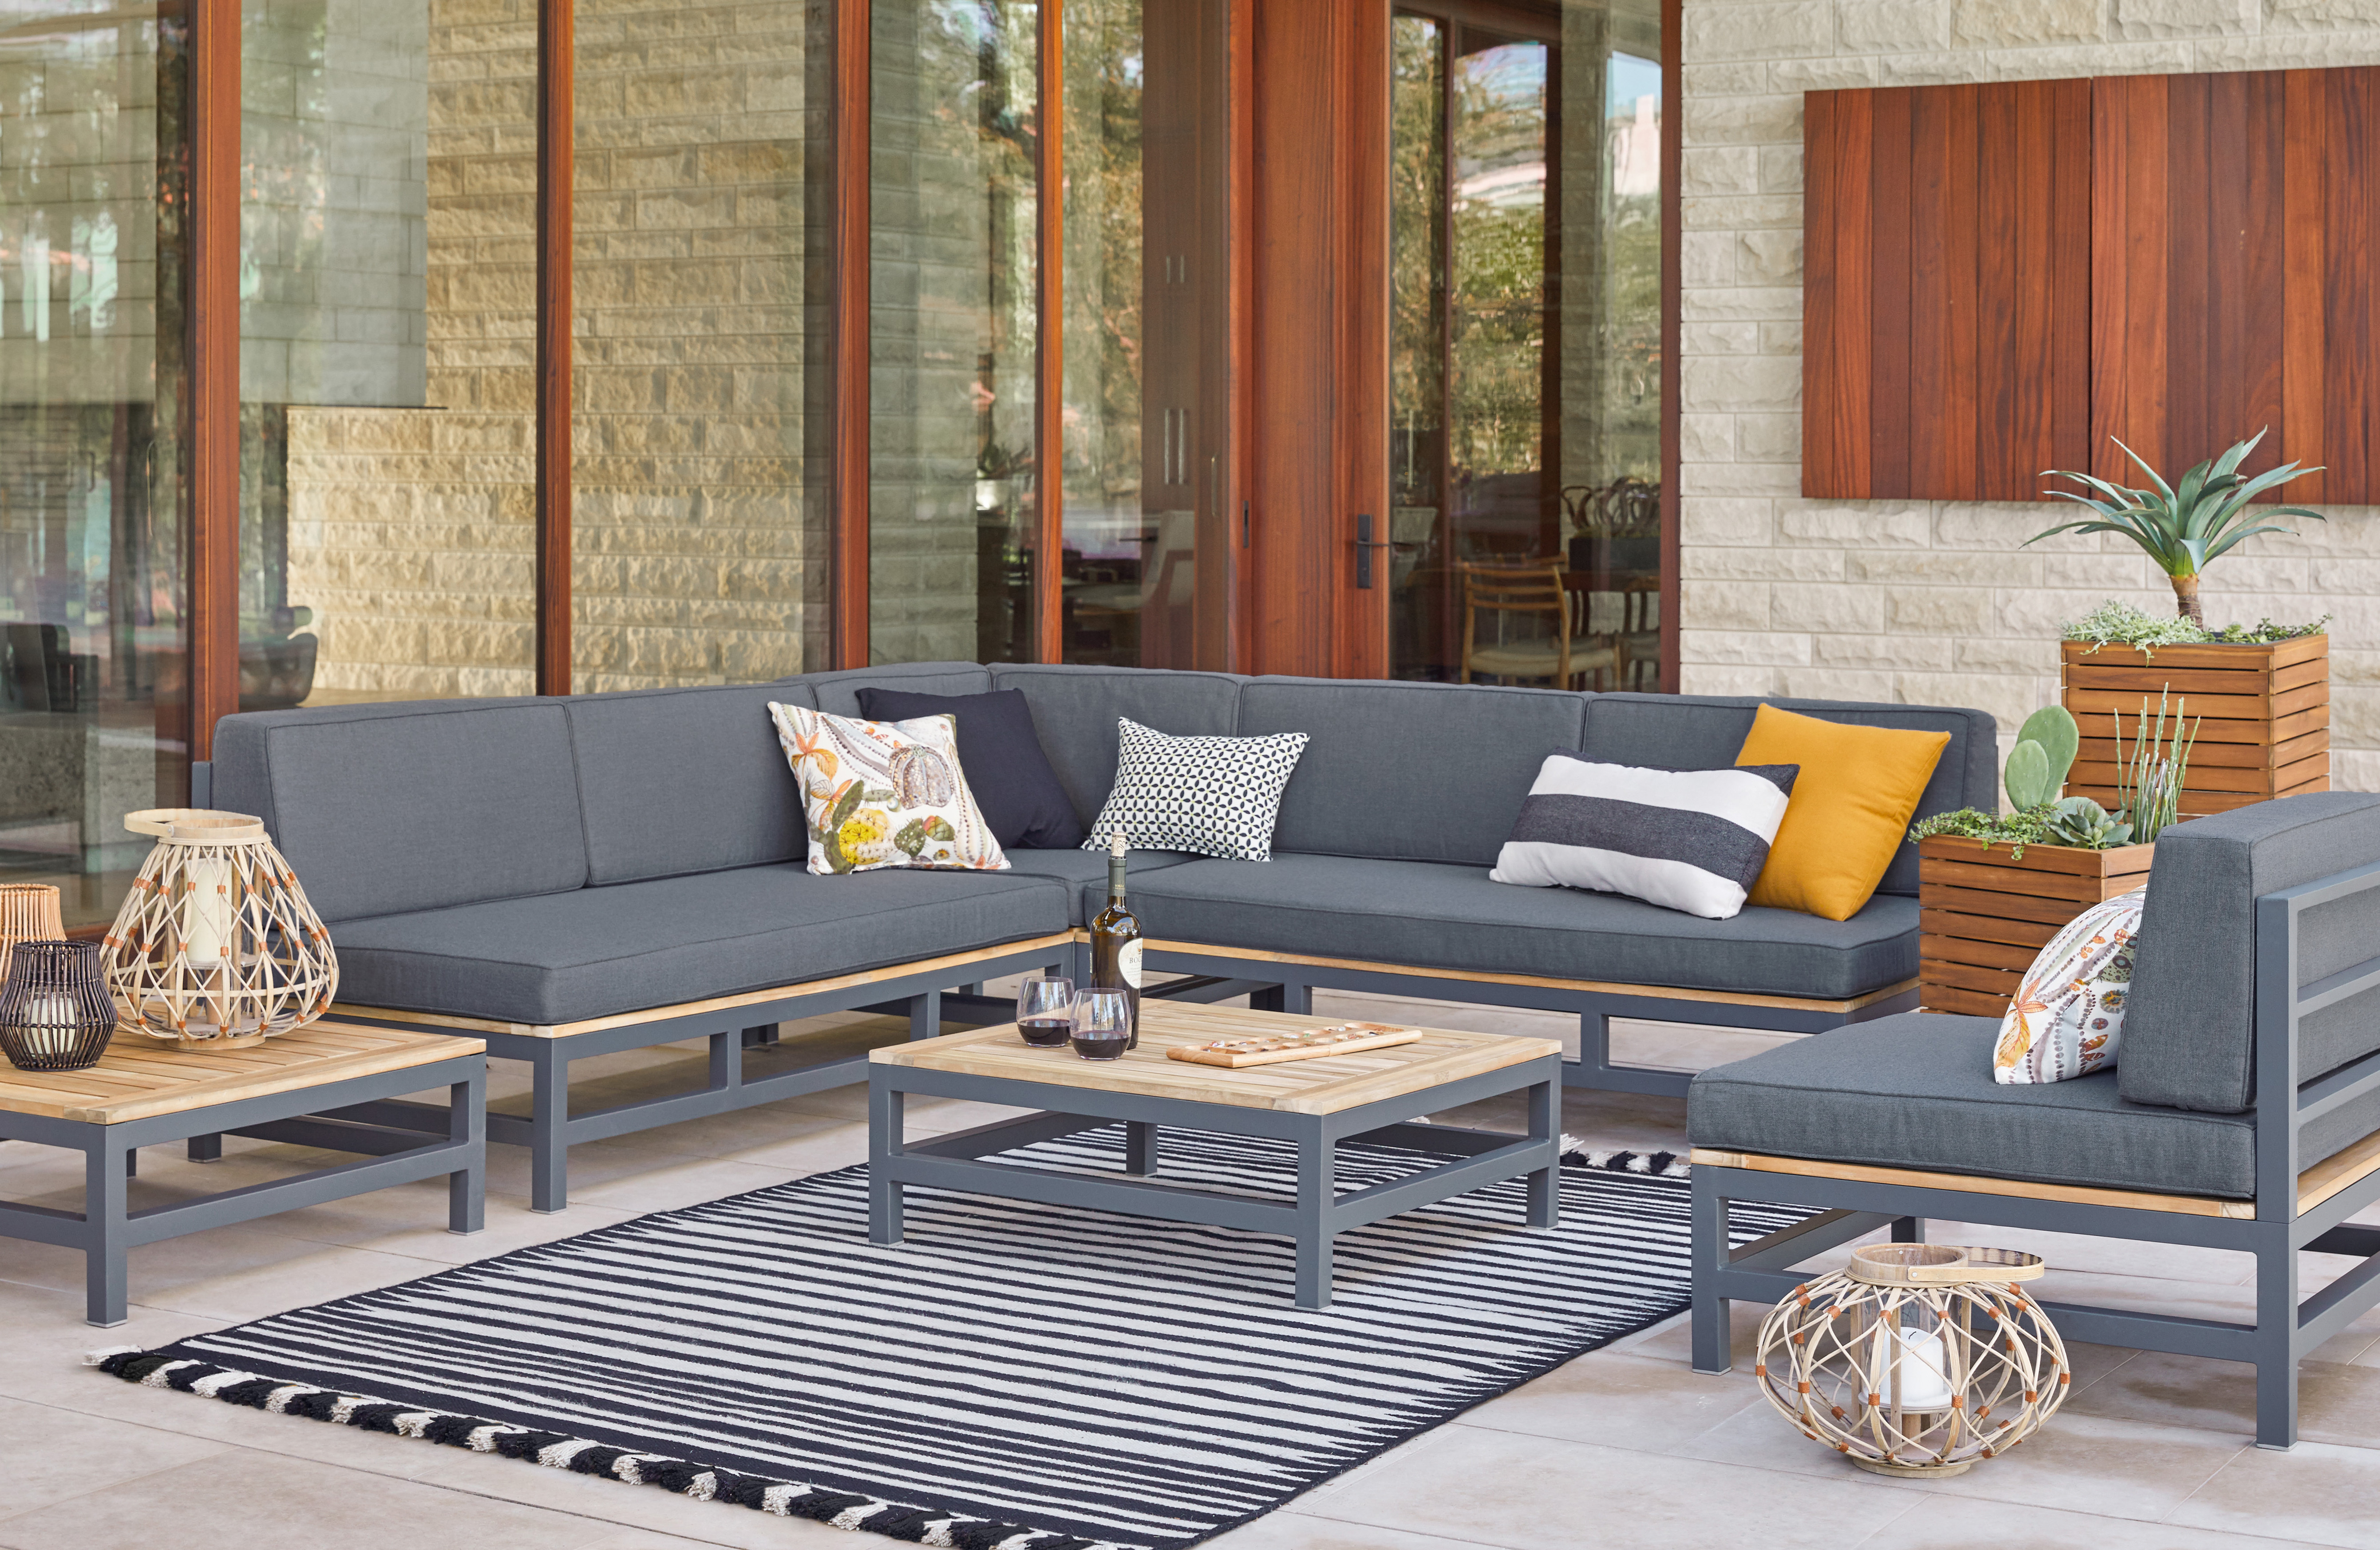 Cost Plus World Market® Celebrates Summer With New Outdoor Collections And  Scavenger Hunt | Business Wire